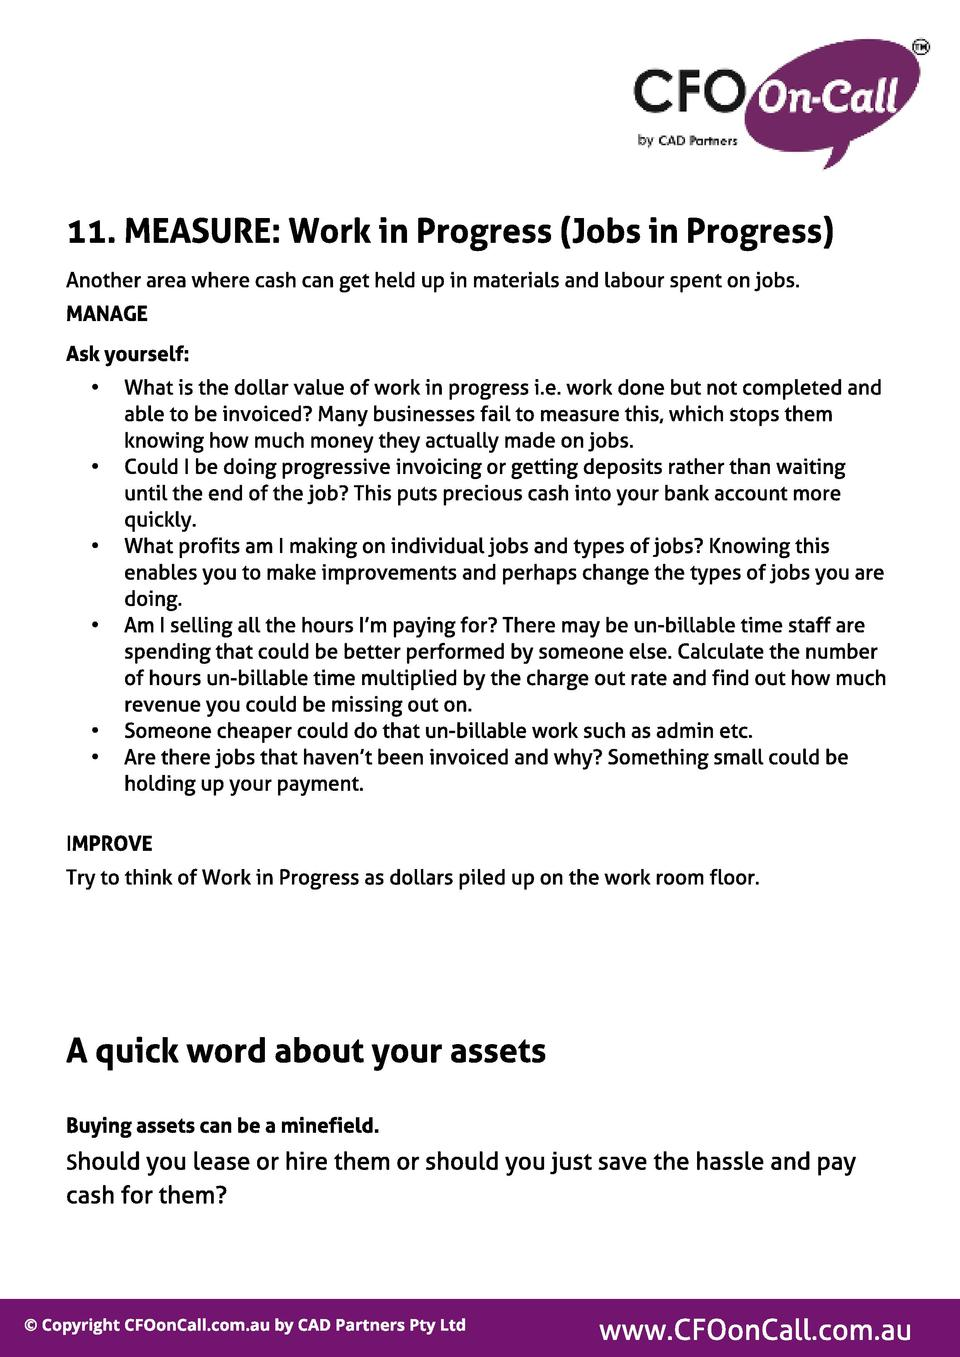 11. MEASURE  Work in Progress  Jobs in Progress  Another area where cash can get held up in materials and labour spent on ...